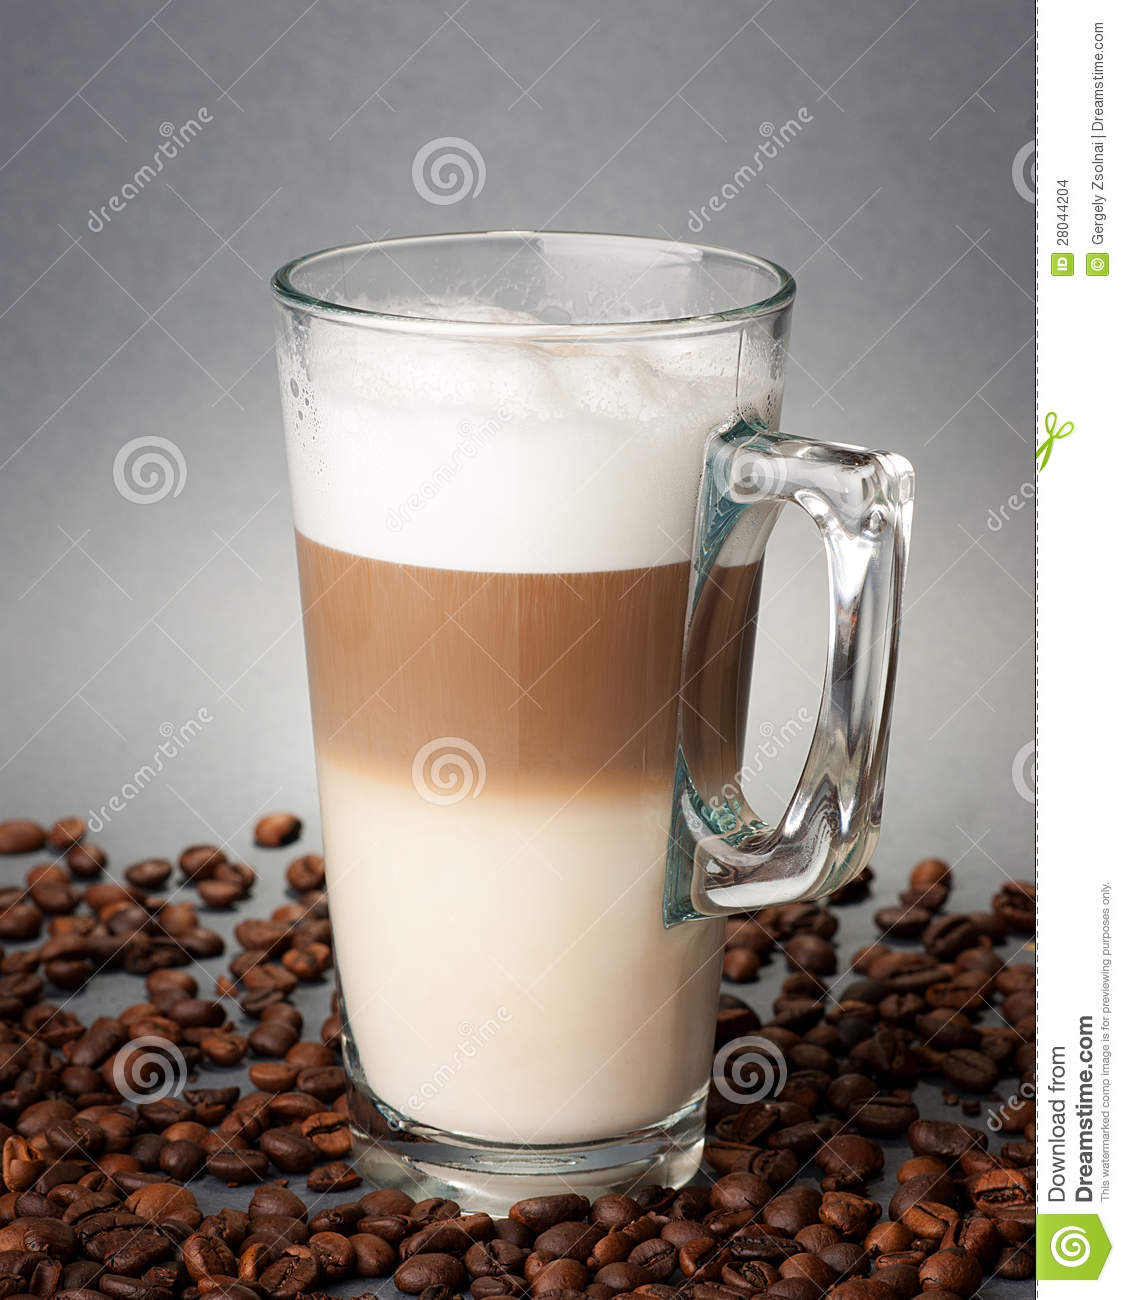 glass of latte macchiato on the coffee beans stock images. Black Bedroom Furniture Sets. Home Design Ideas